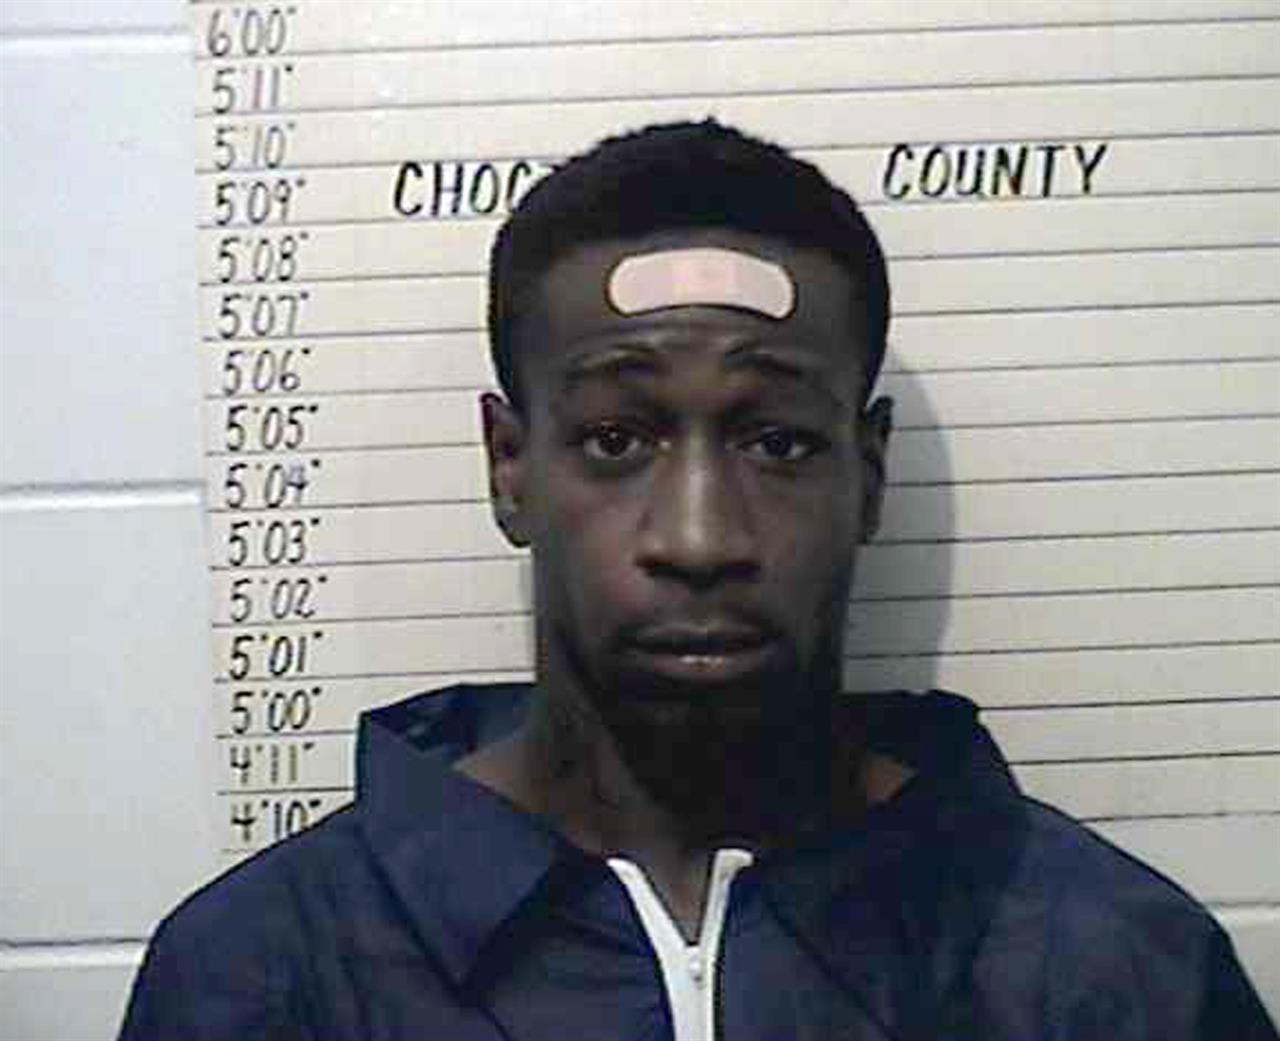 Man jailed in Oklahoma after being hurt in police shooting ...